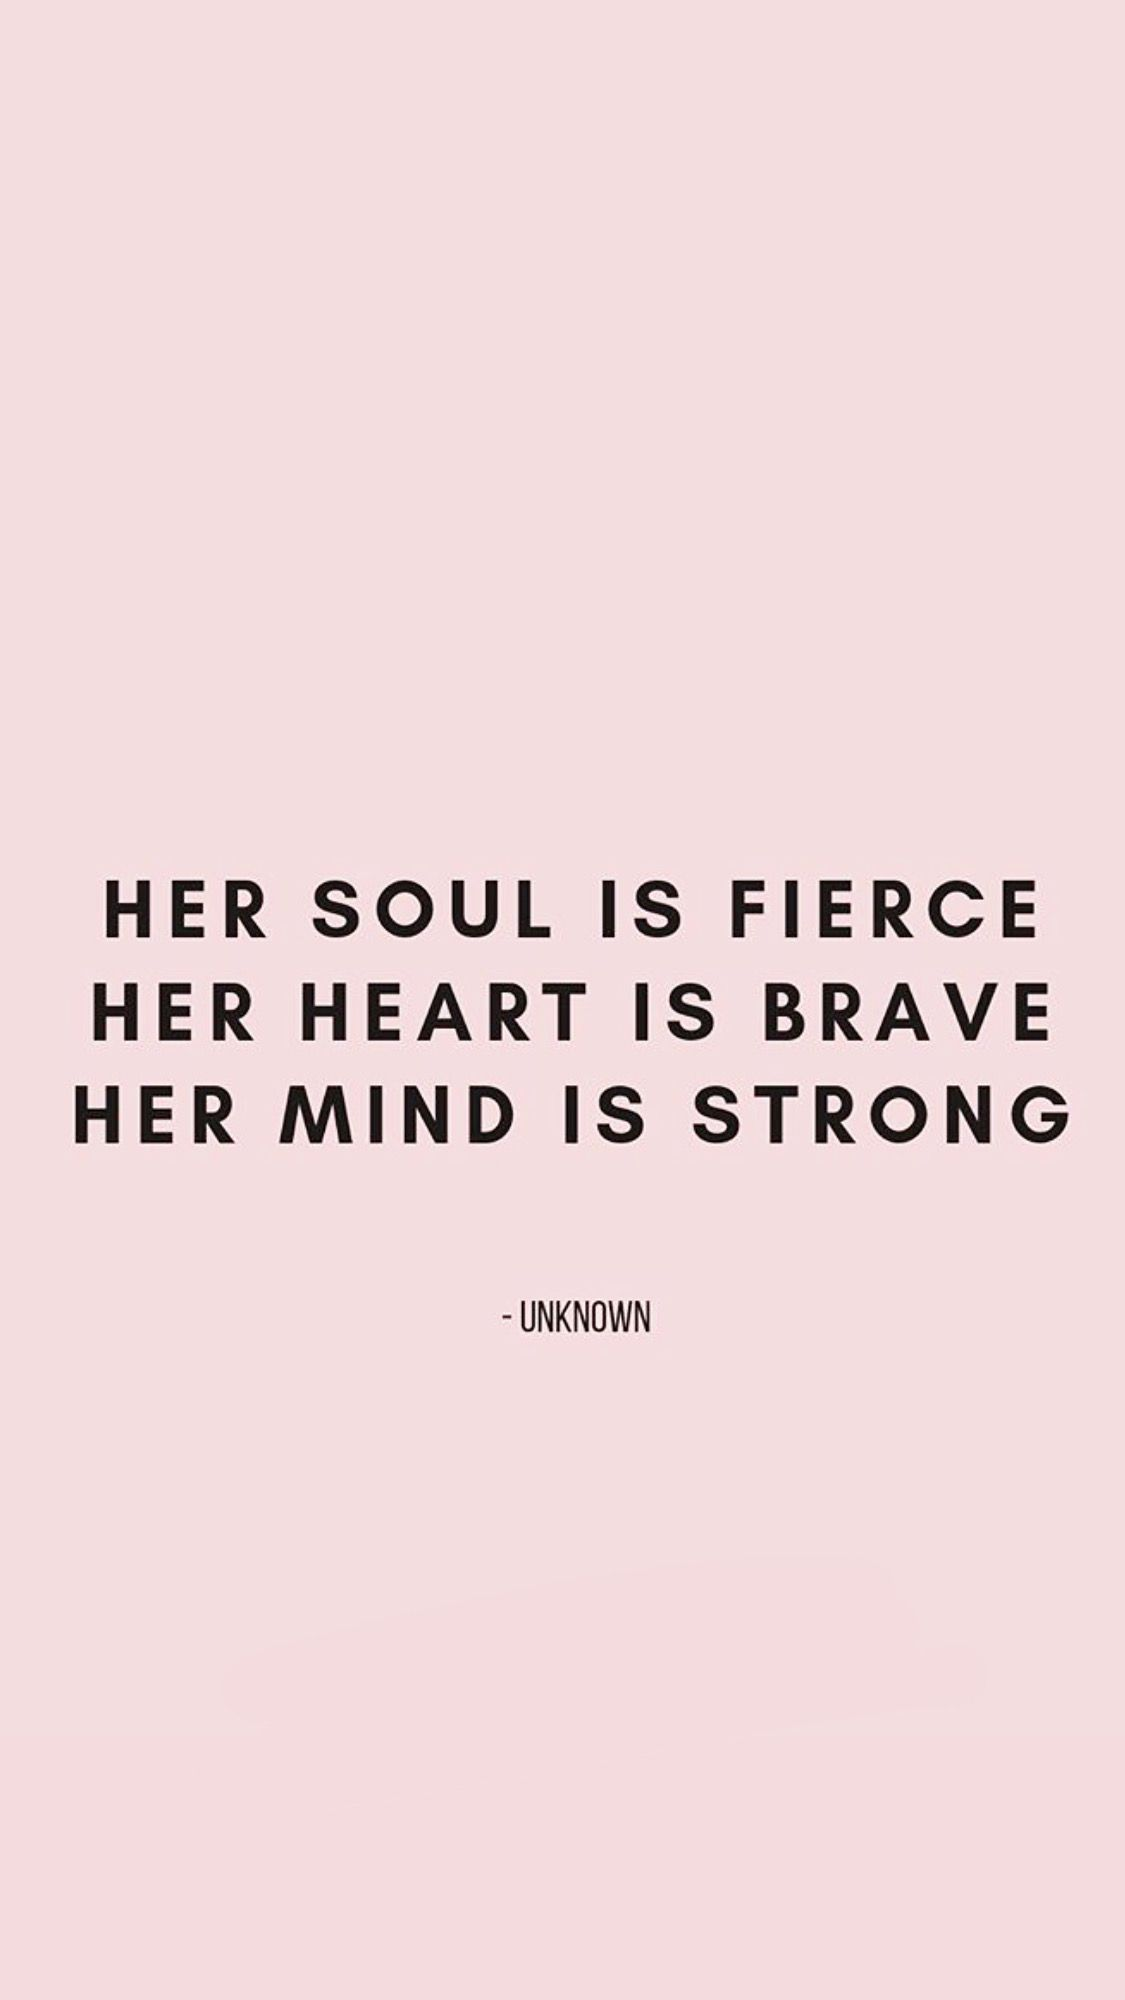 Motivational Positive Quotes For Her